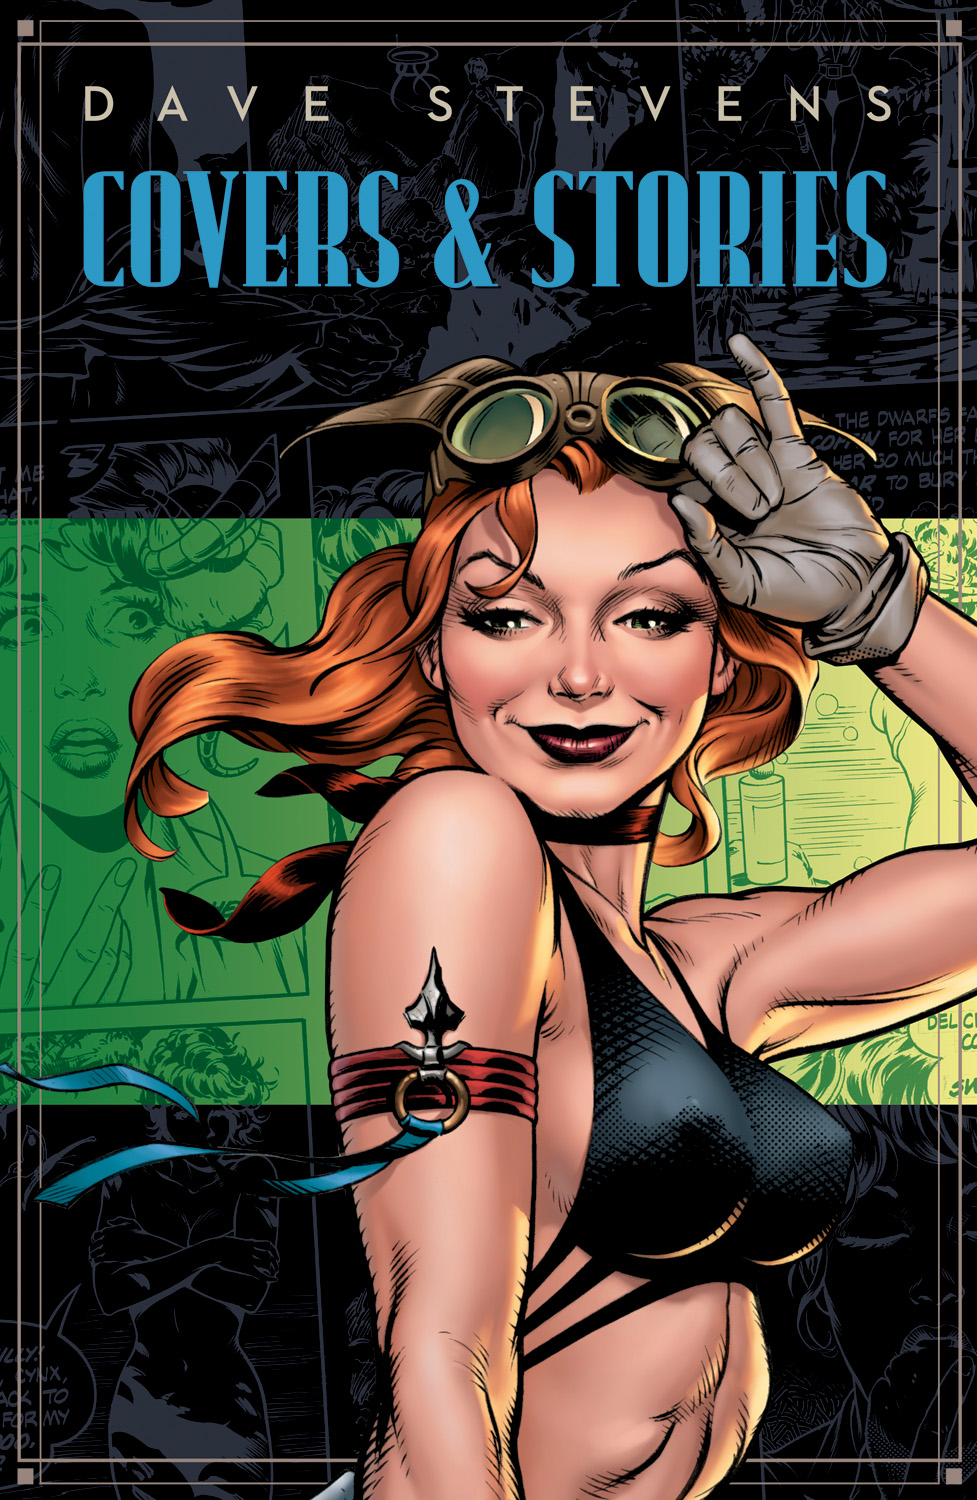 [Dave Stevens Covers & Stories Cover Image]